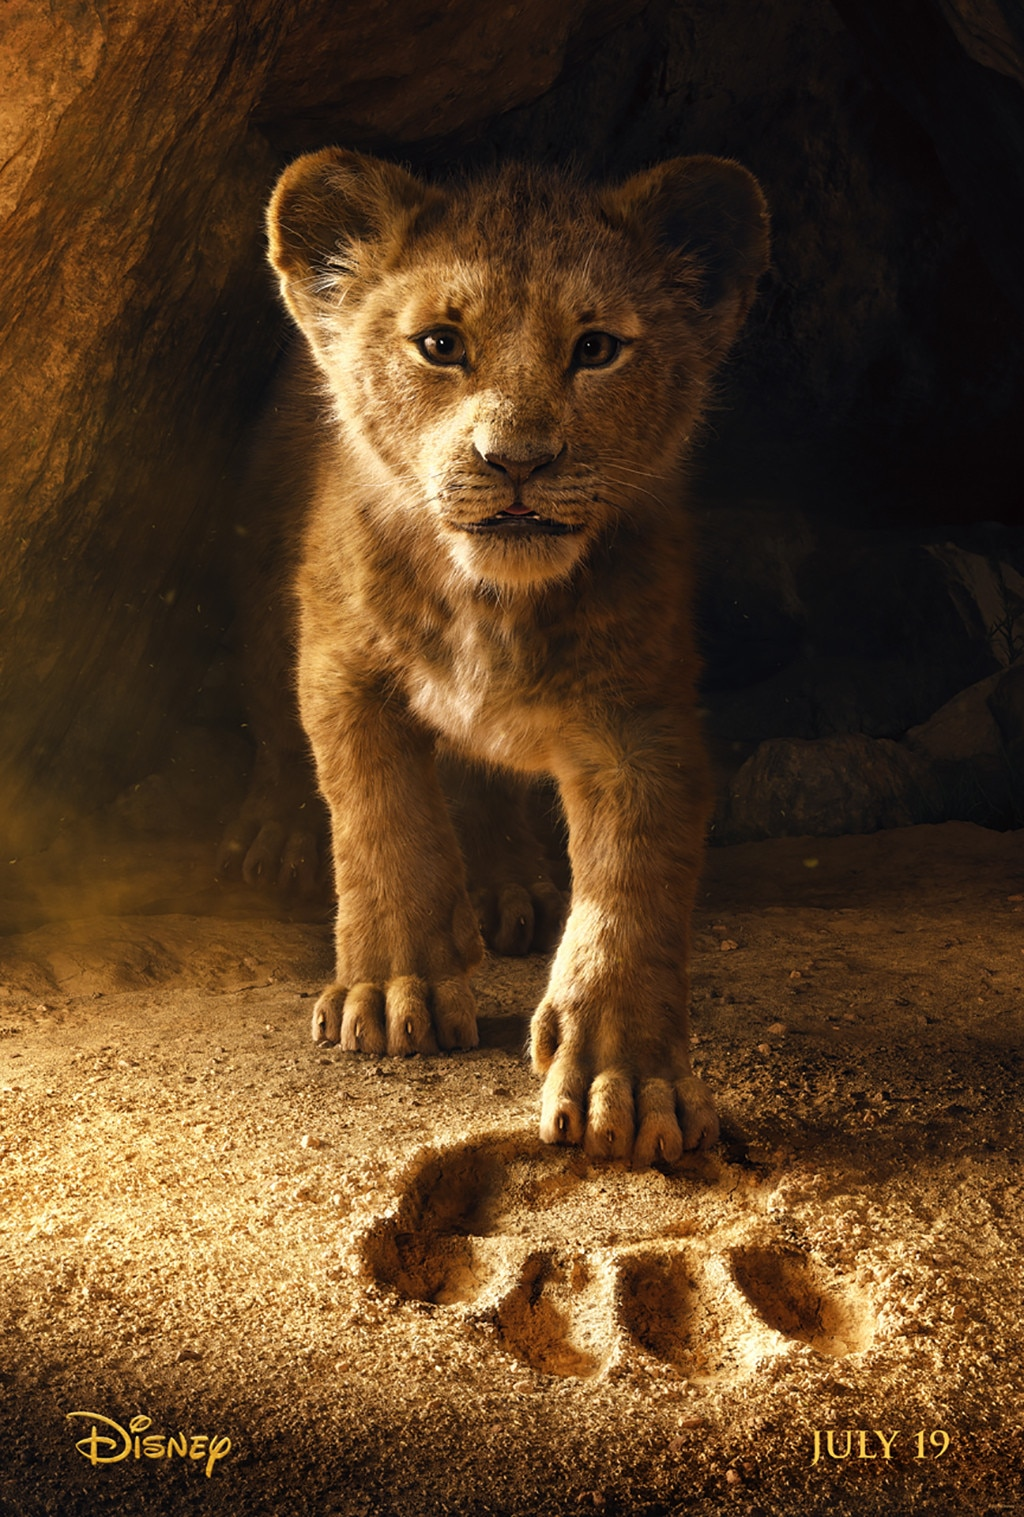 The First Lion King Trailer Will Take You Back To Your